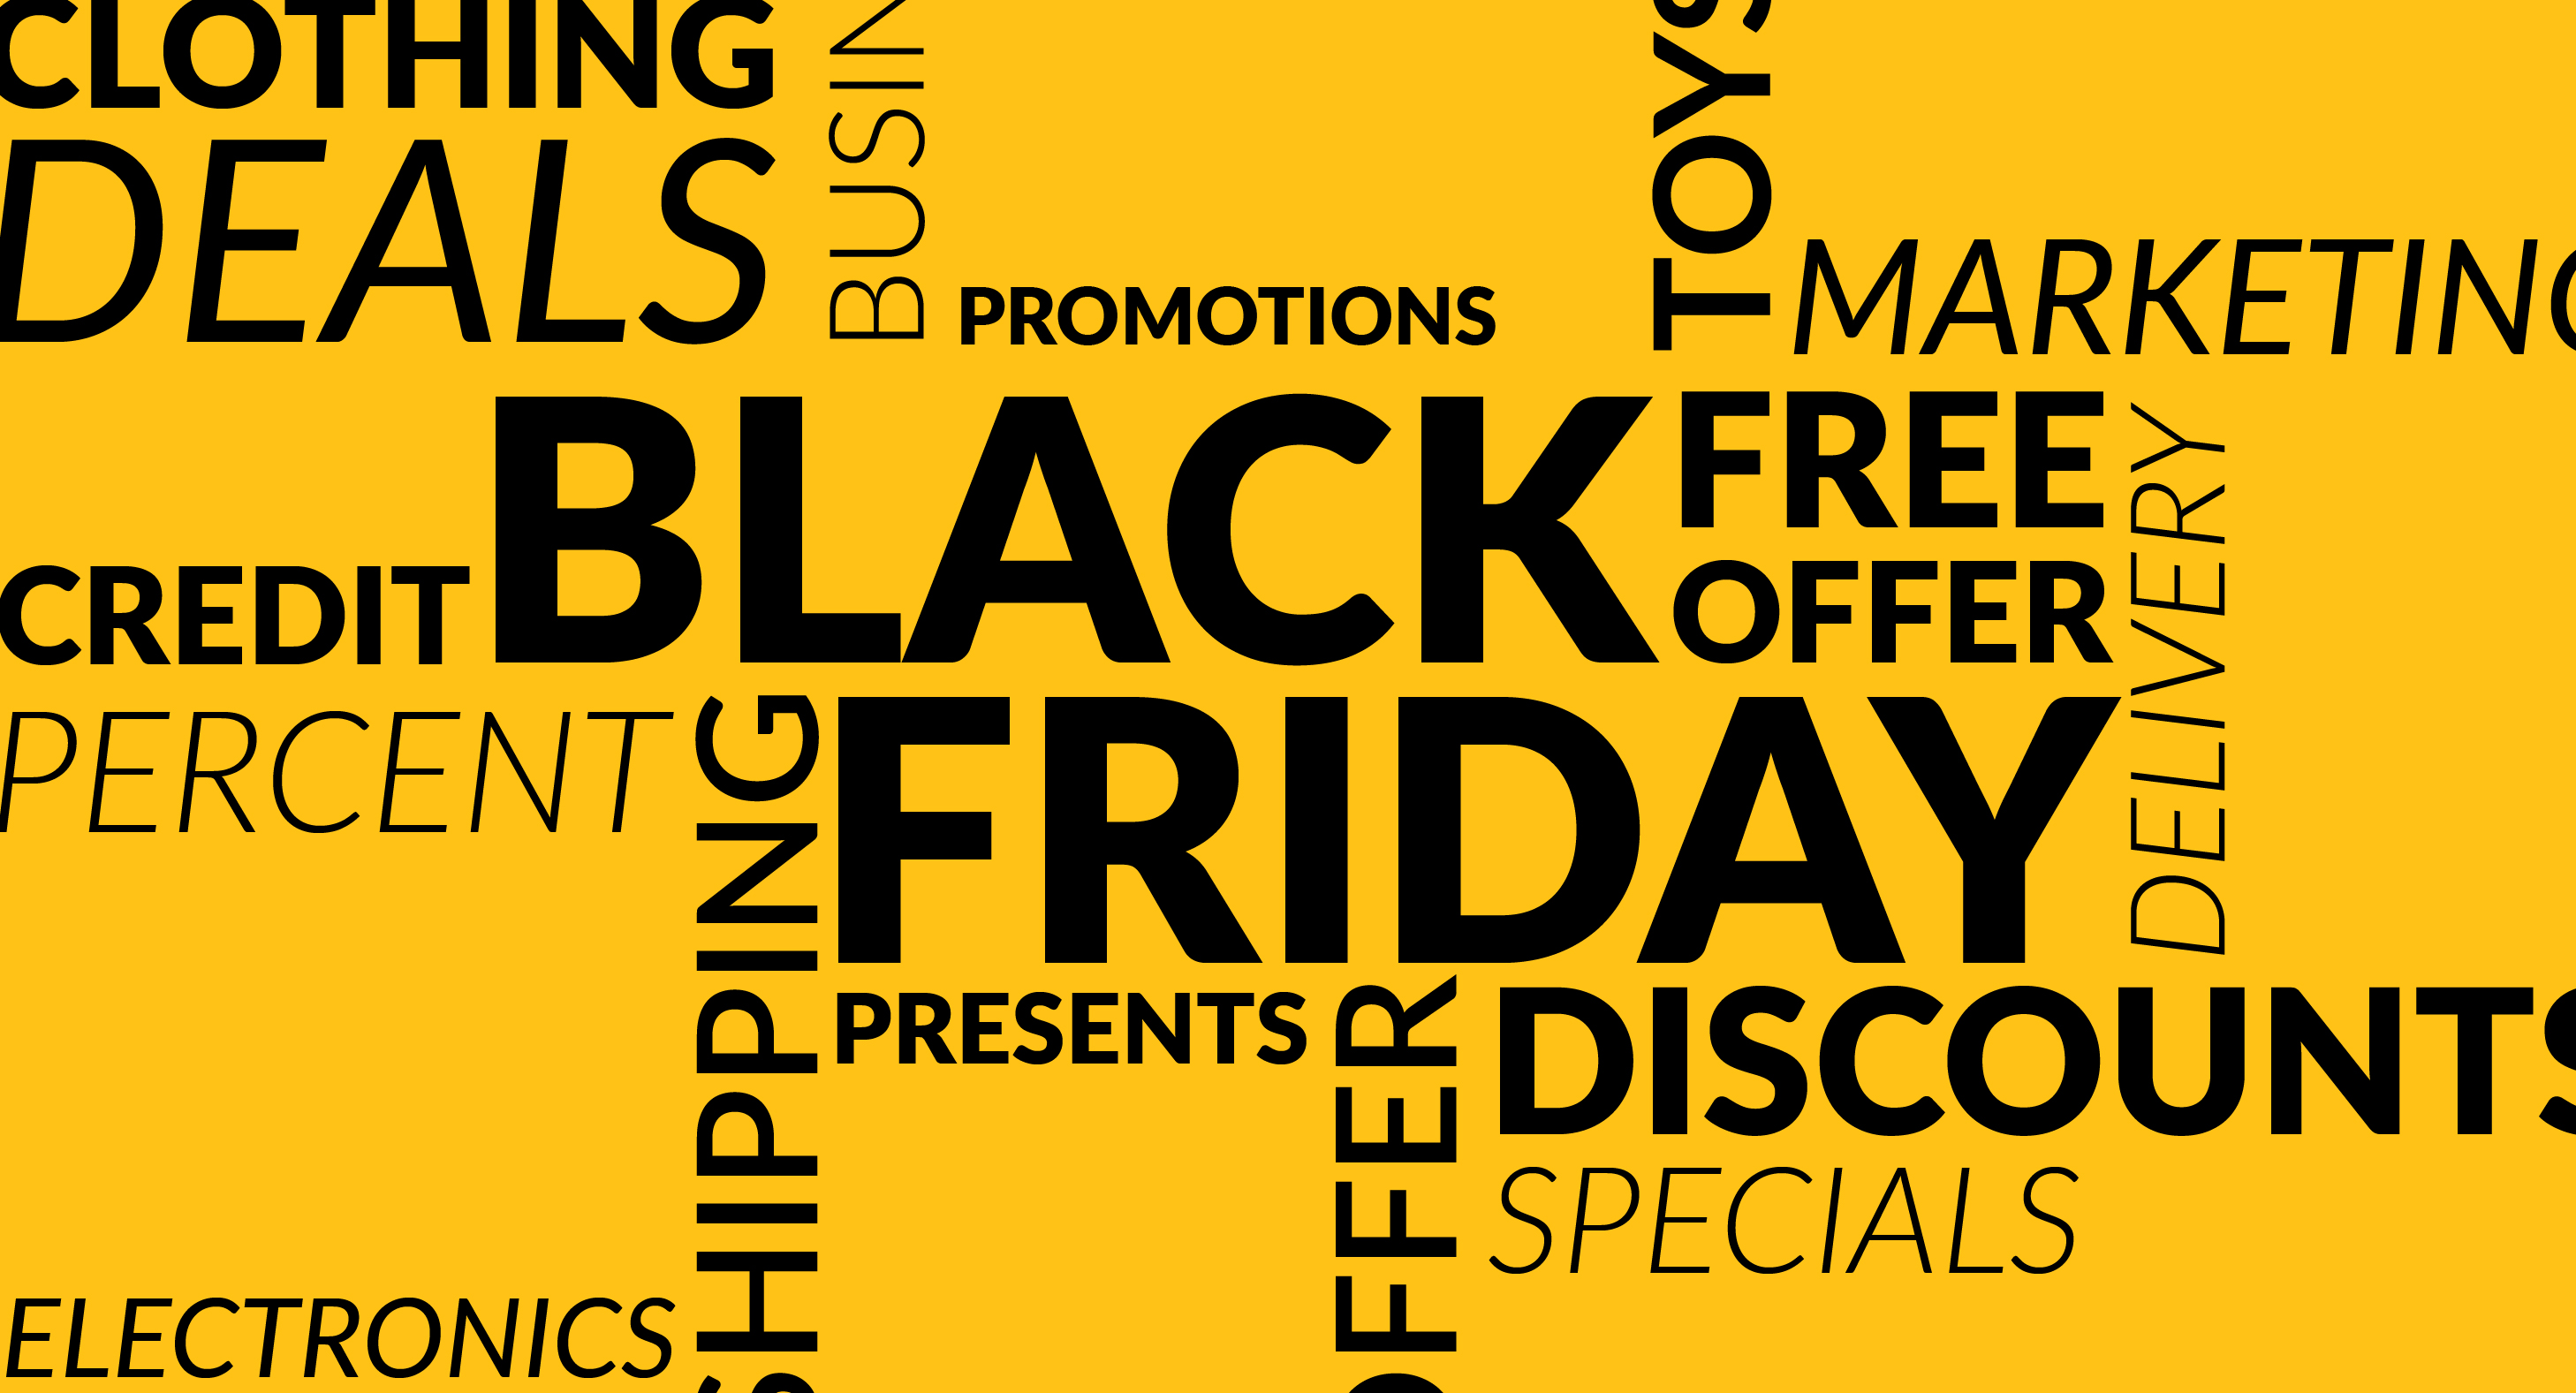 Five Top Tips To Market Your Black Friday Specials